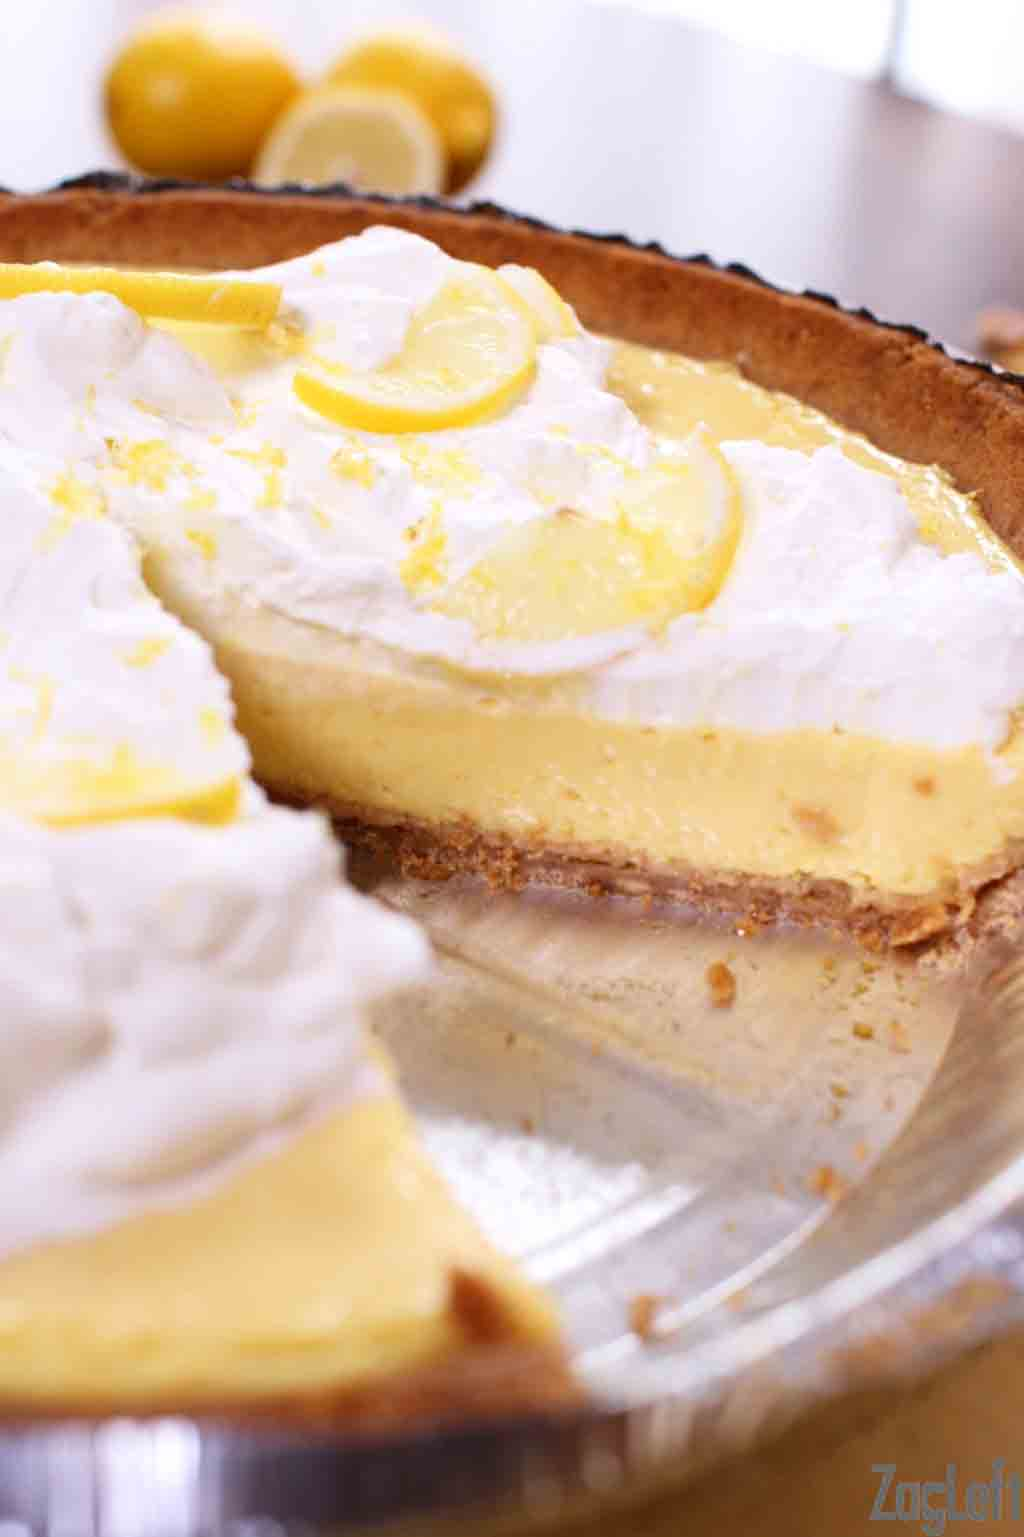 Closeup of a Lemon Mango Icebox Pie with a slice missing showing the pie filling topped with whipped cream and lemon slices